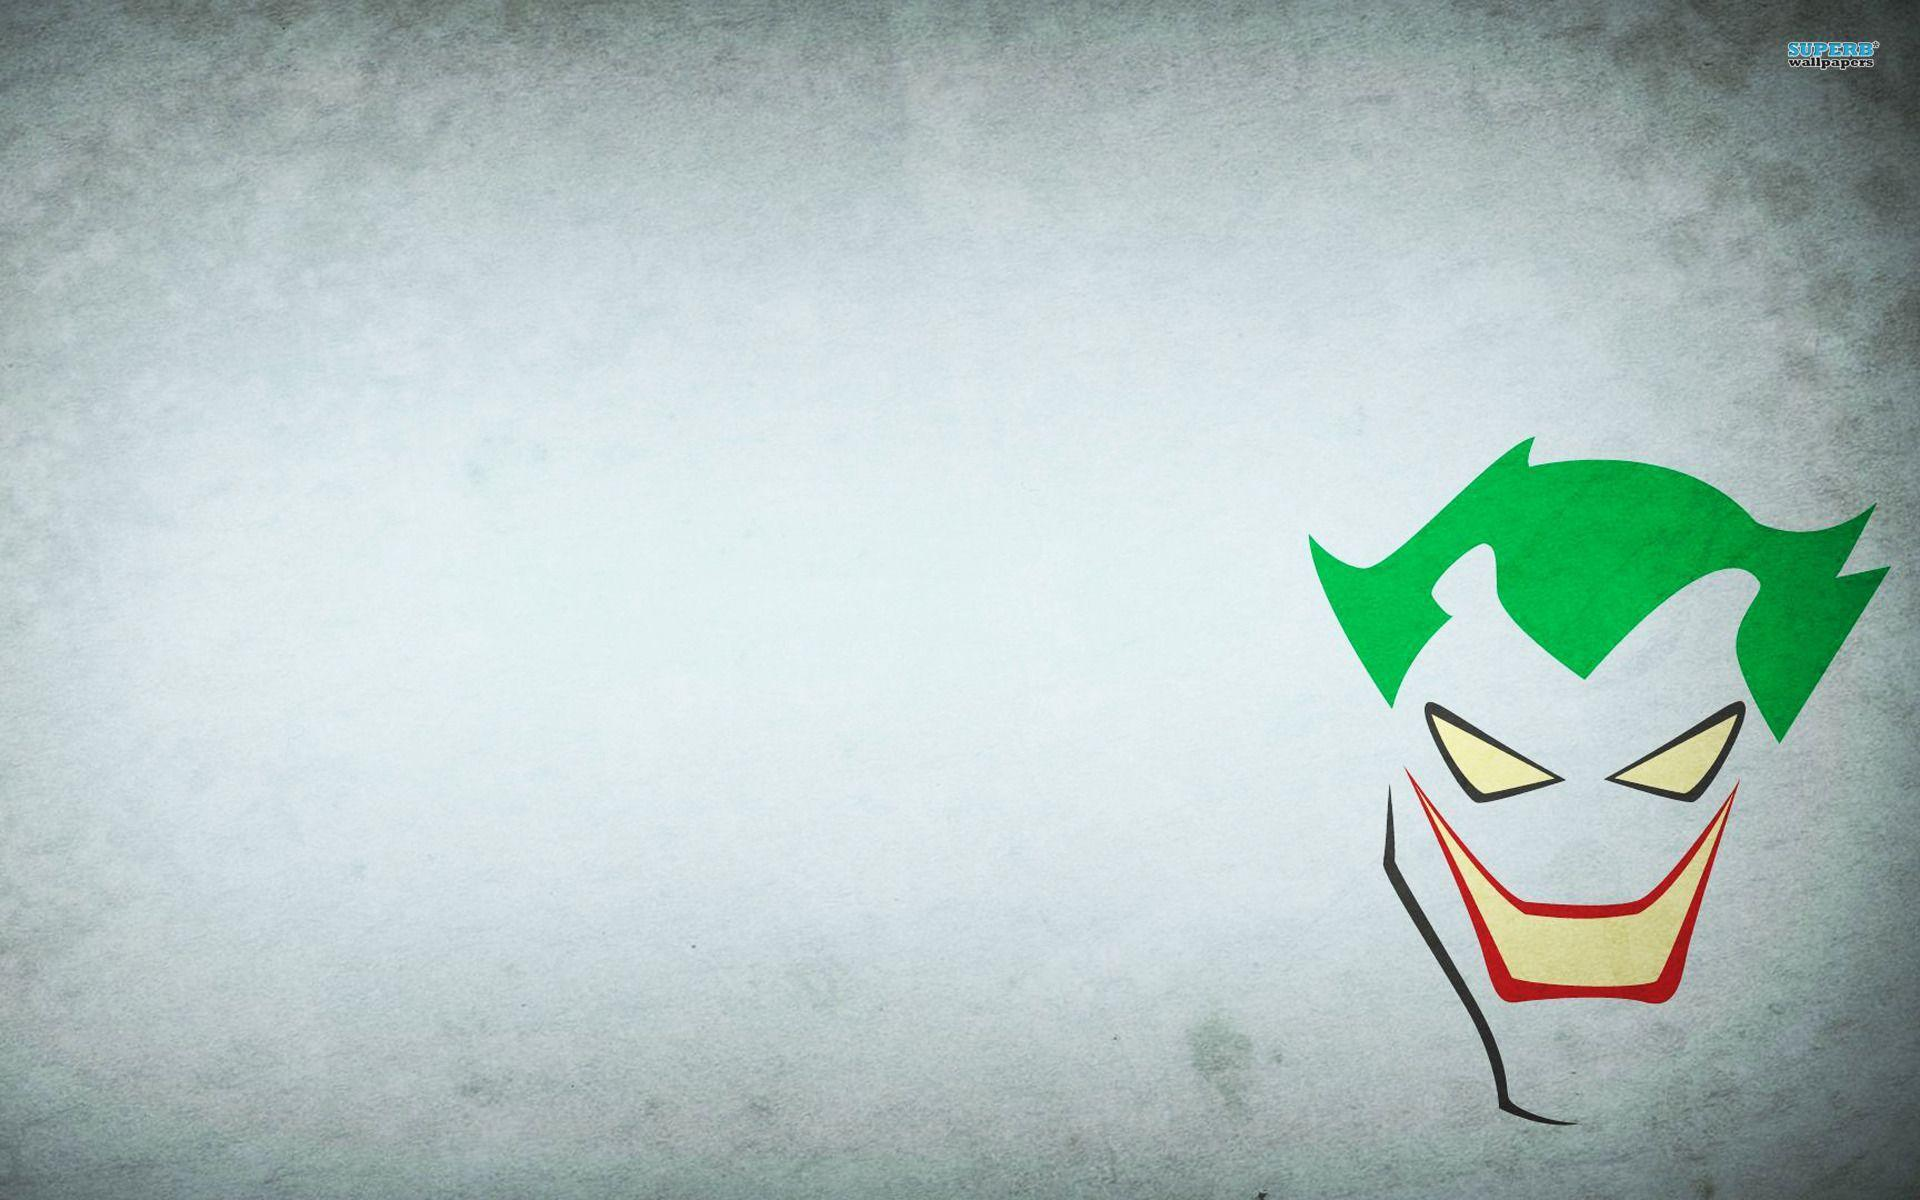 The Joker Logo Wallpaper 19091 | MEGAZIP